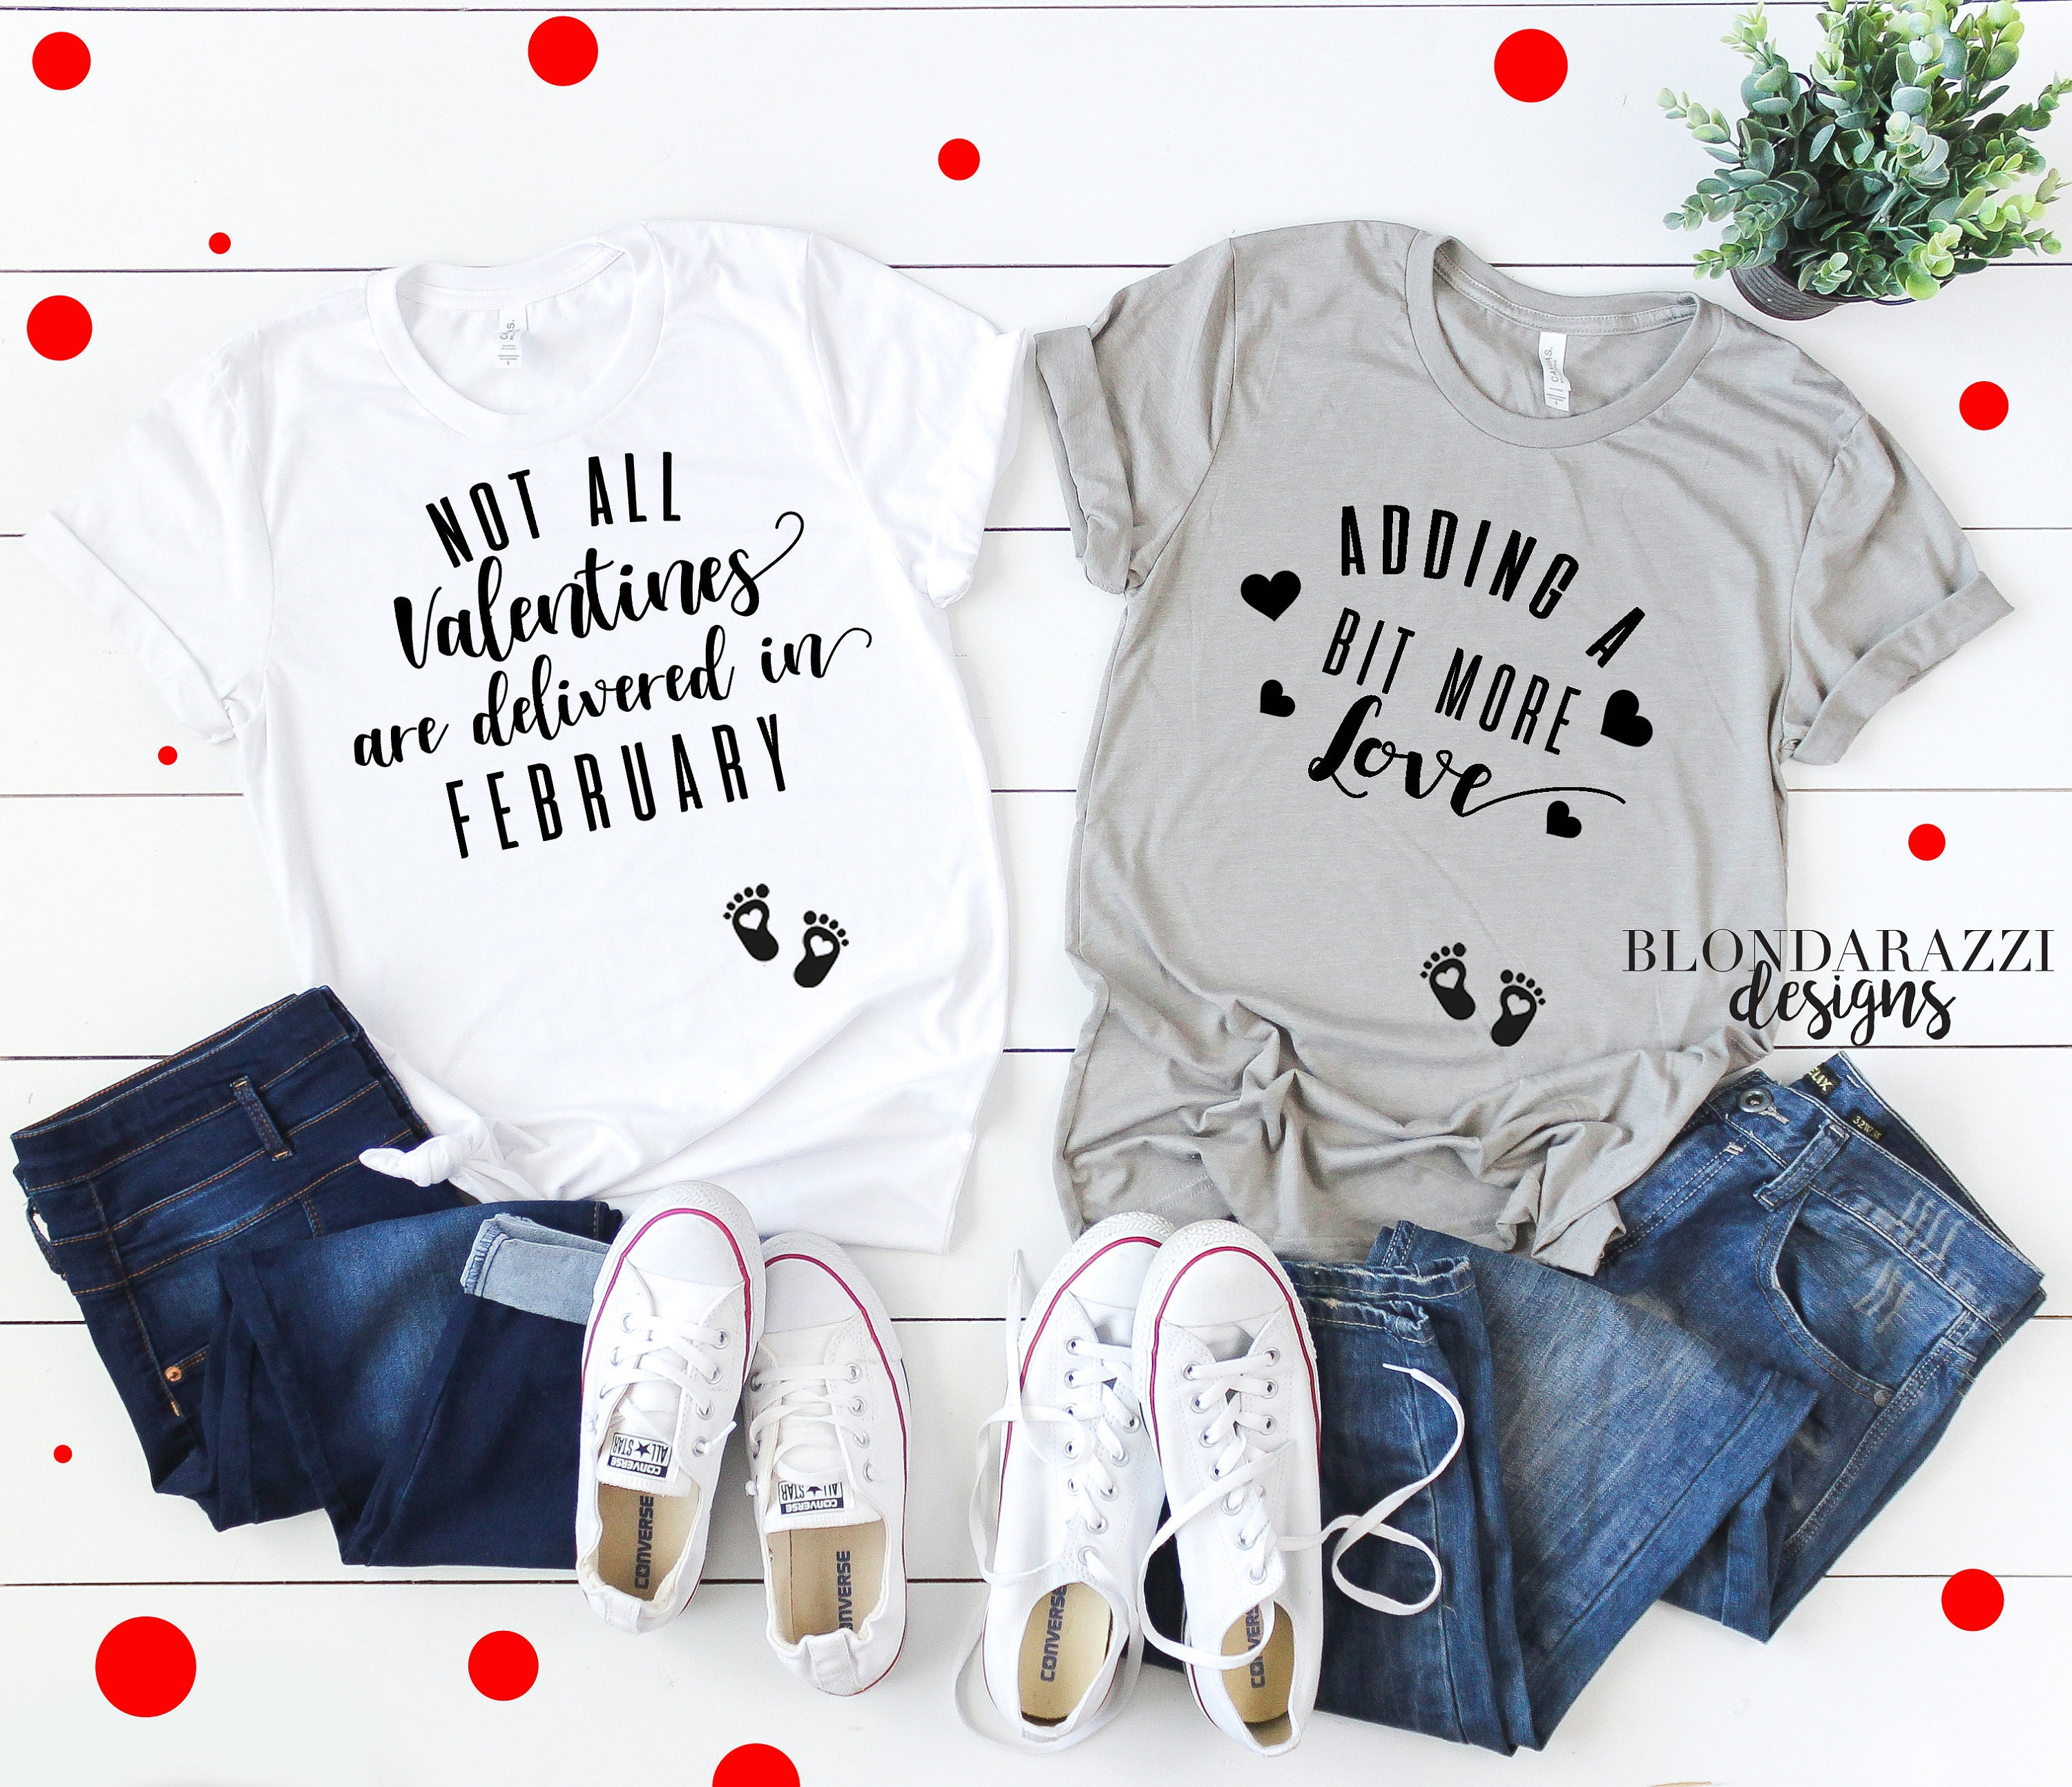 Not all valentines are delivered in february valentines day baby pregnancy announcement shirts